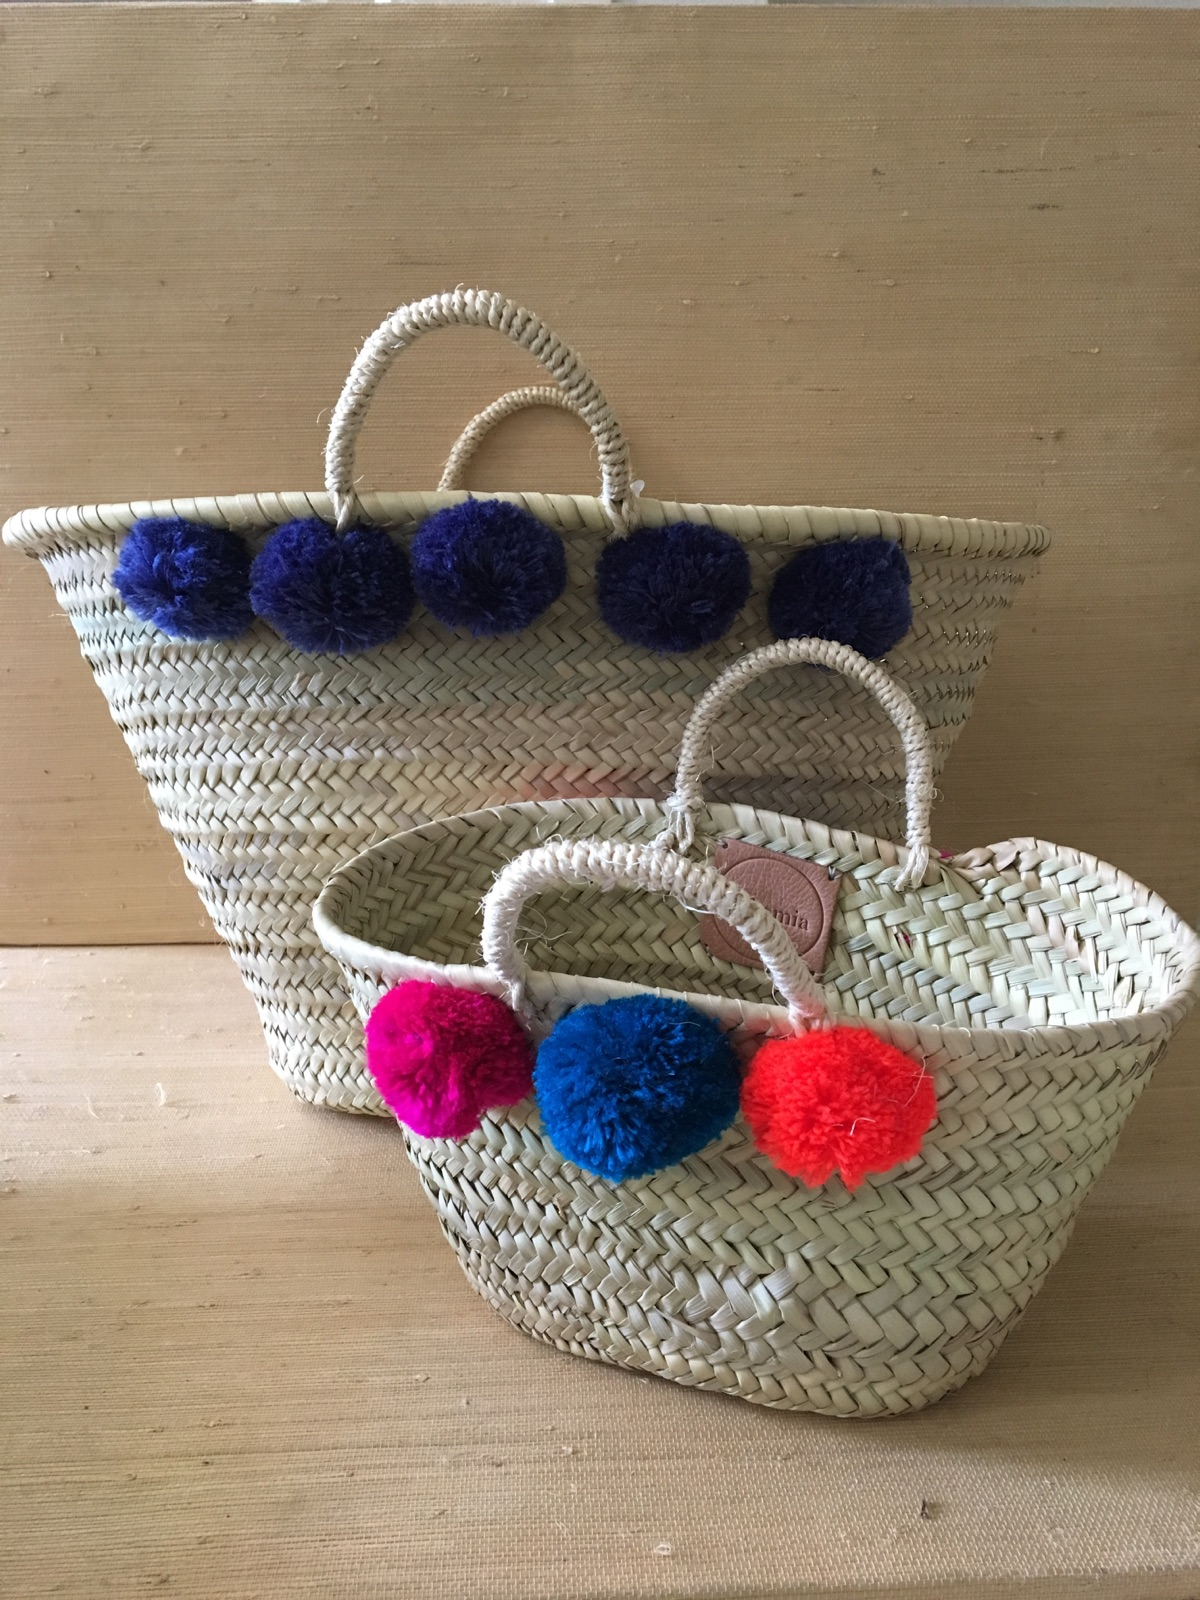 Bohemia's pompon basket. Available in two sizes with an array of colors.